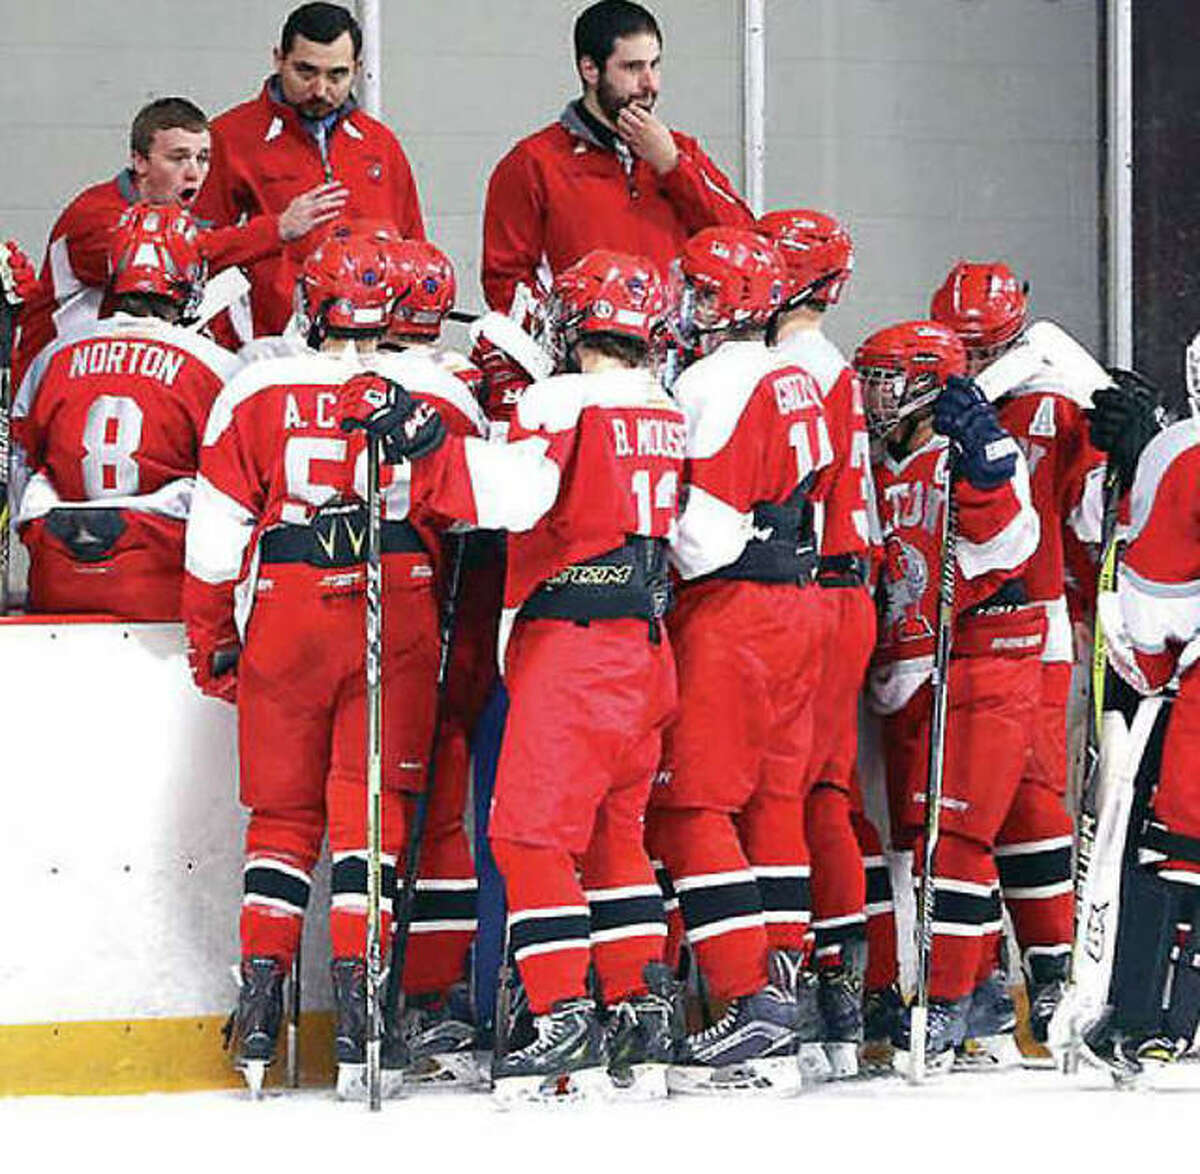 The Alton Redbirds hockey team receives between-periods instructions during a 2019 game. The high-school hockey league has elected to delay the start of the upcoming season from November to January because of the COVID-19 pandemic.